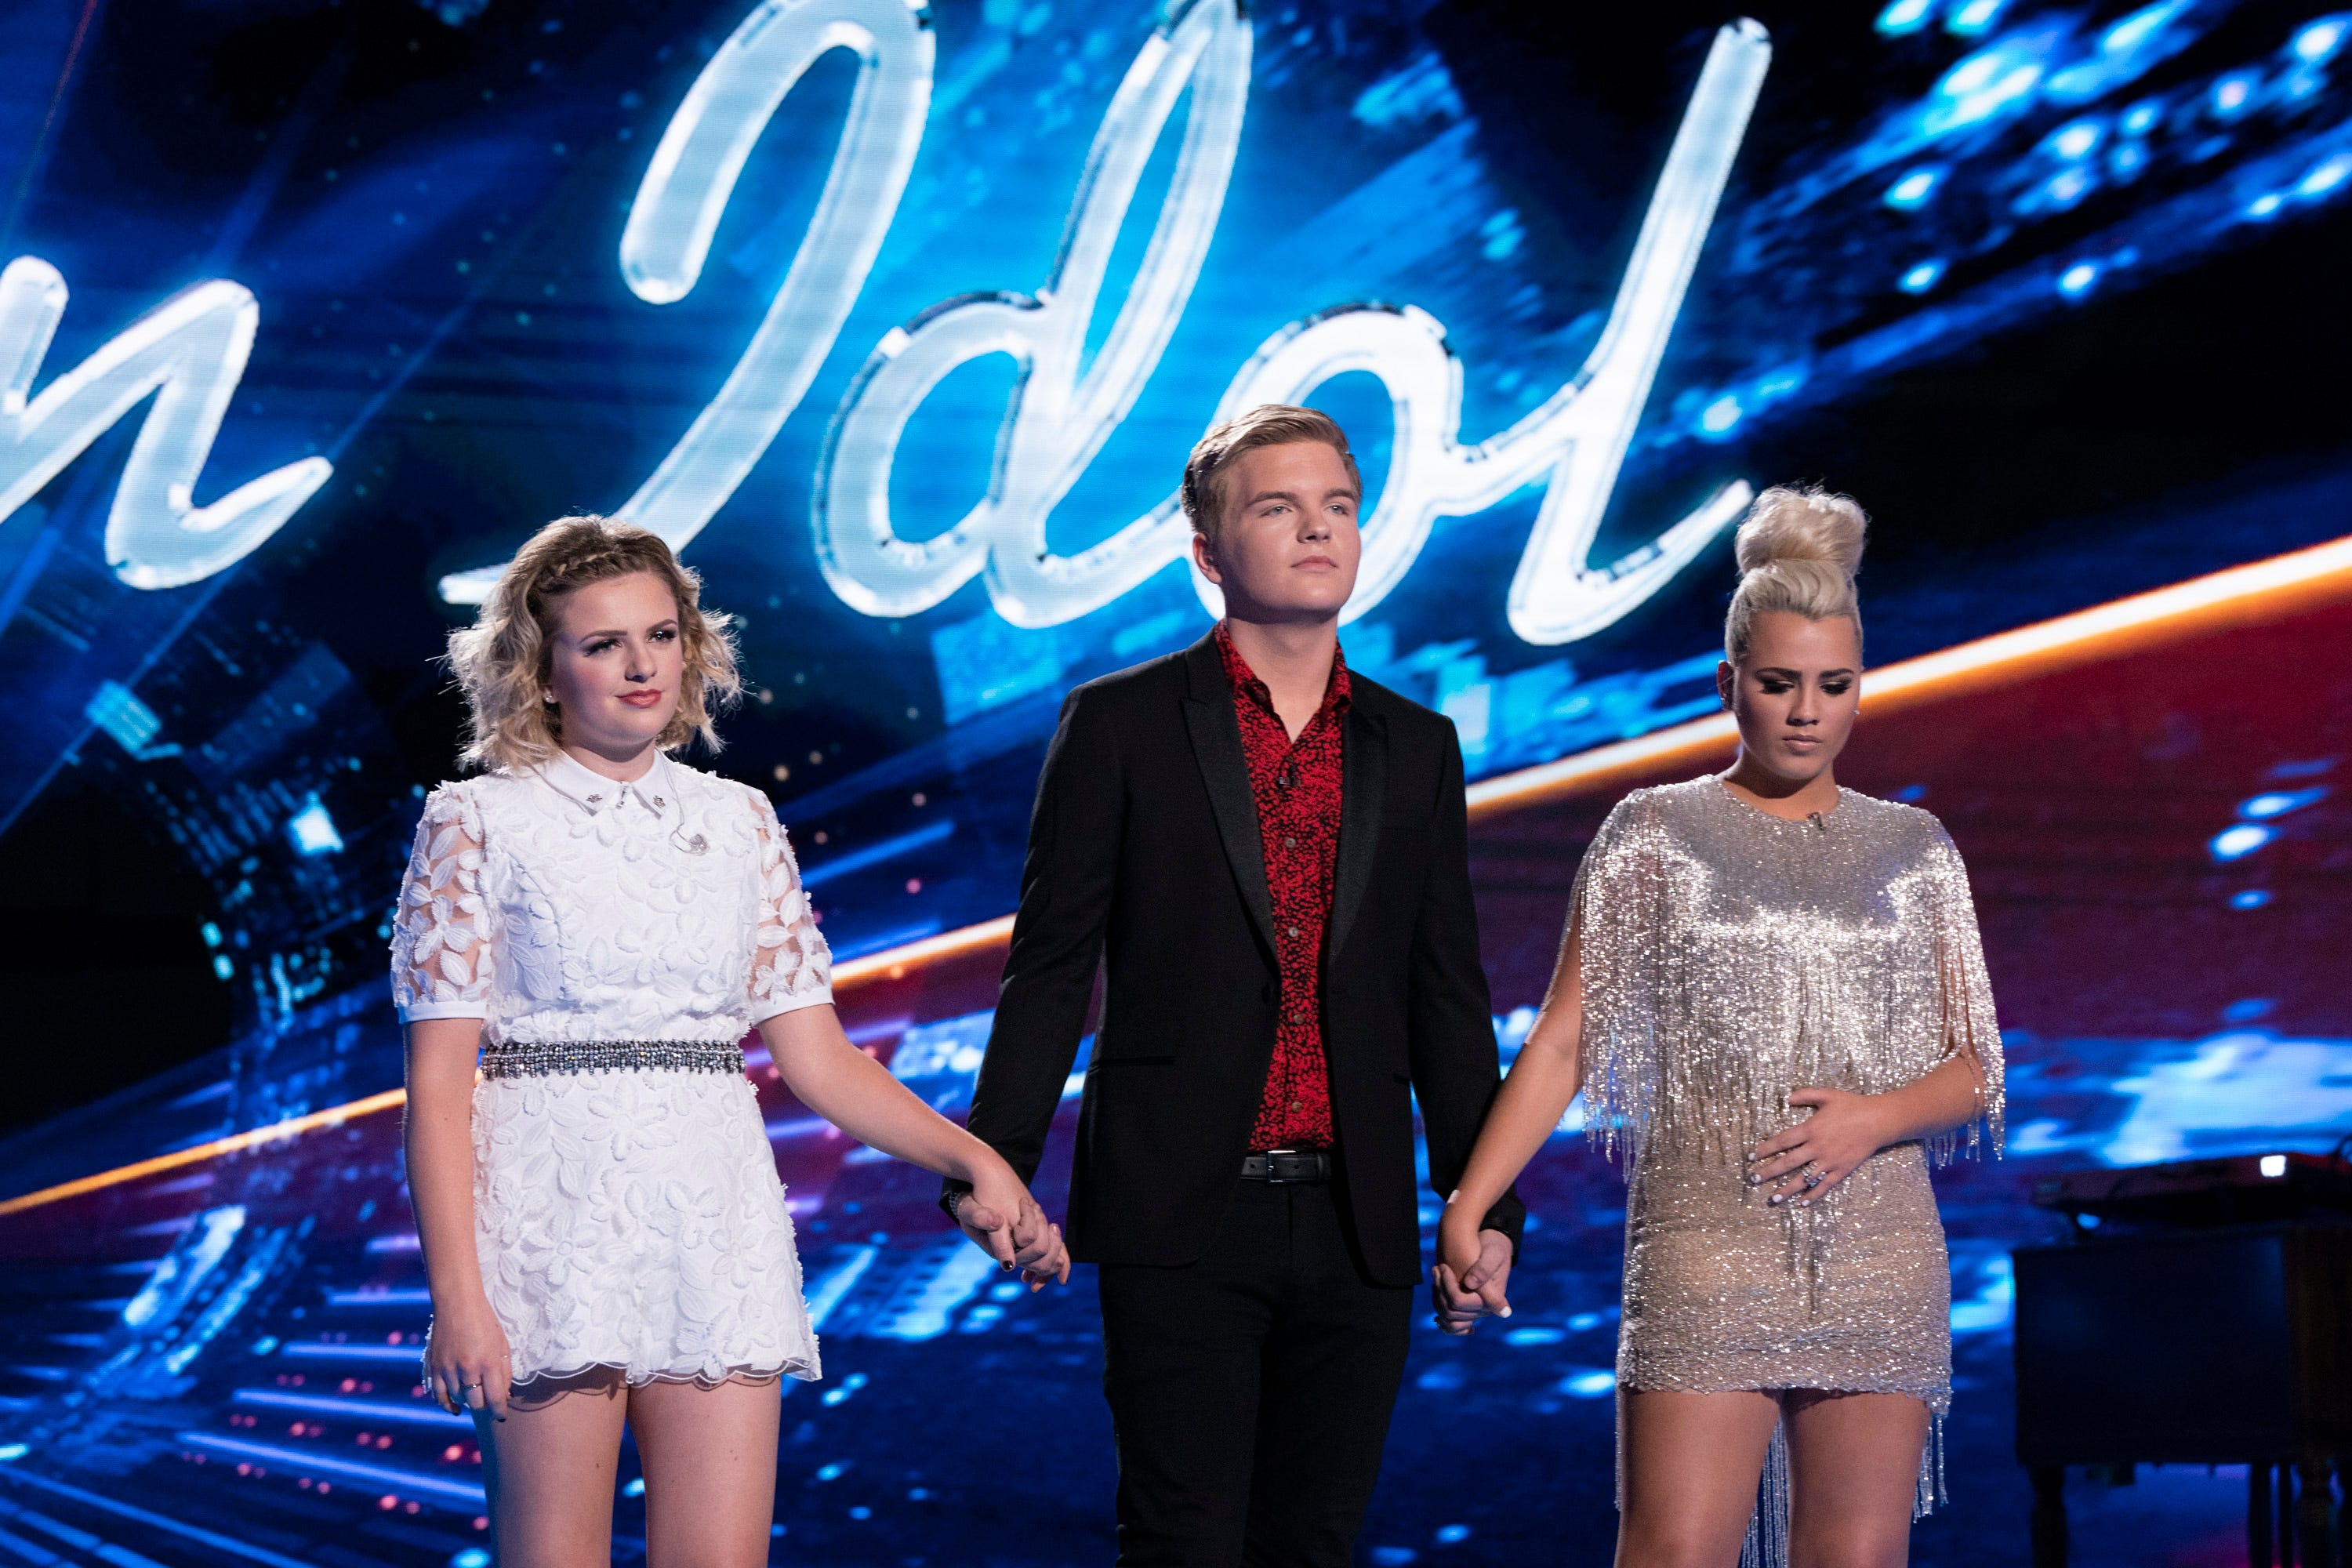 American idol prizes for winner and runner up 2018